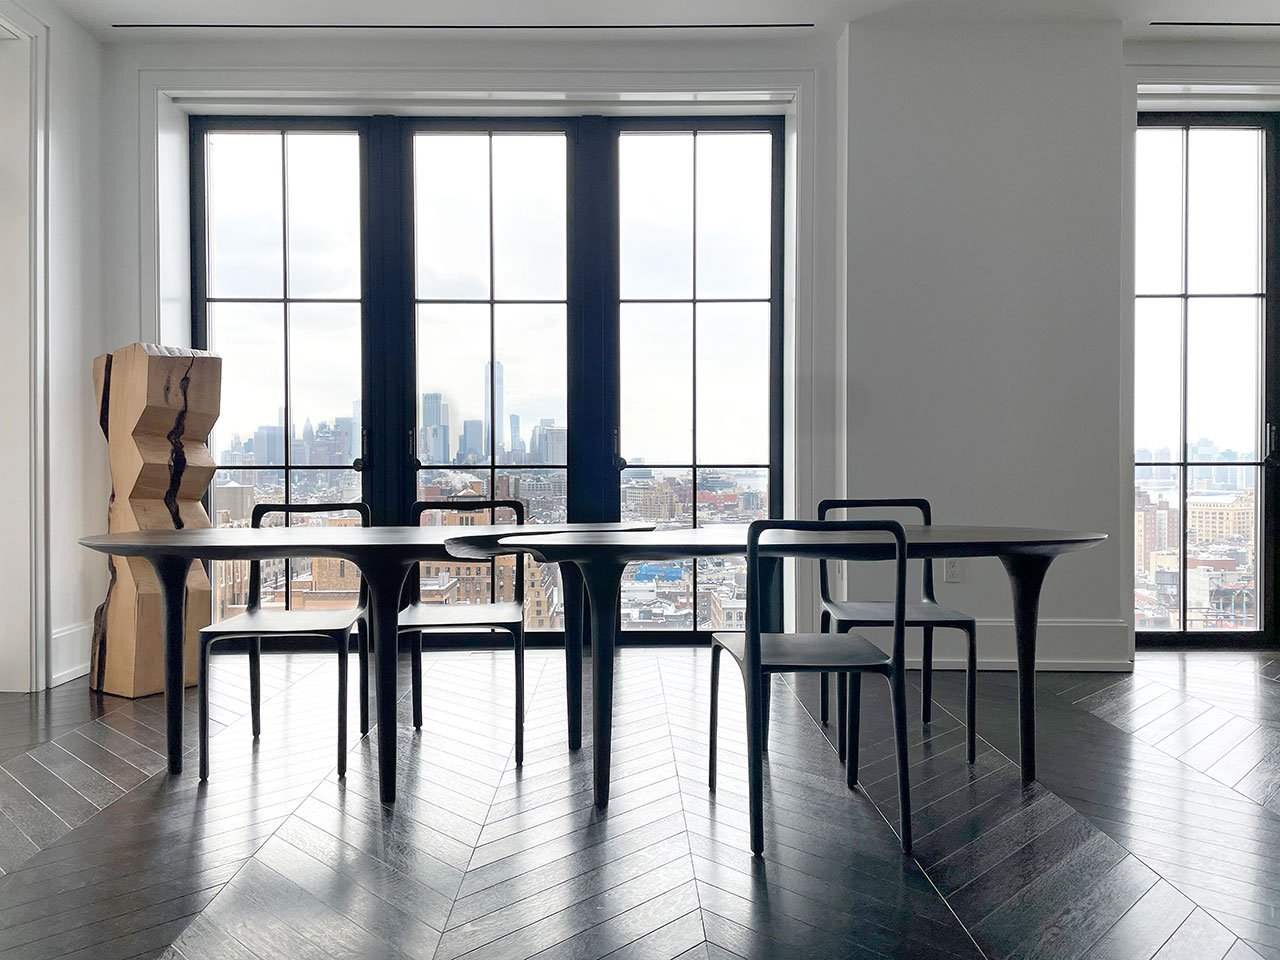 Galerie Philia at Walker Tower, Chelsea, New York. Courtesy of Galerie Philia. Featured: Vince Skelly, Corsica Tower, 2020. Oak. 30 x 30 x 127 cm. Cedric Breisacher, Dot chair, 2020. Hand-sculpted solid oak. H 46/80 cm x P 44 cm x L42 cm. Cedric Breisacher, Dining table, 2020. Hand-sculpted plane tree.